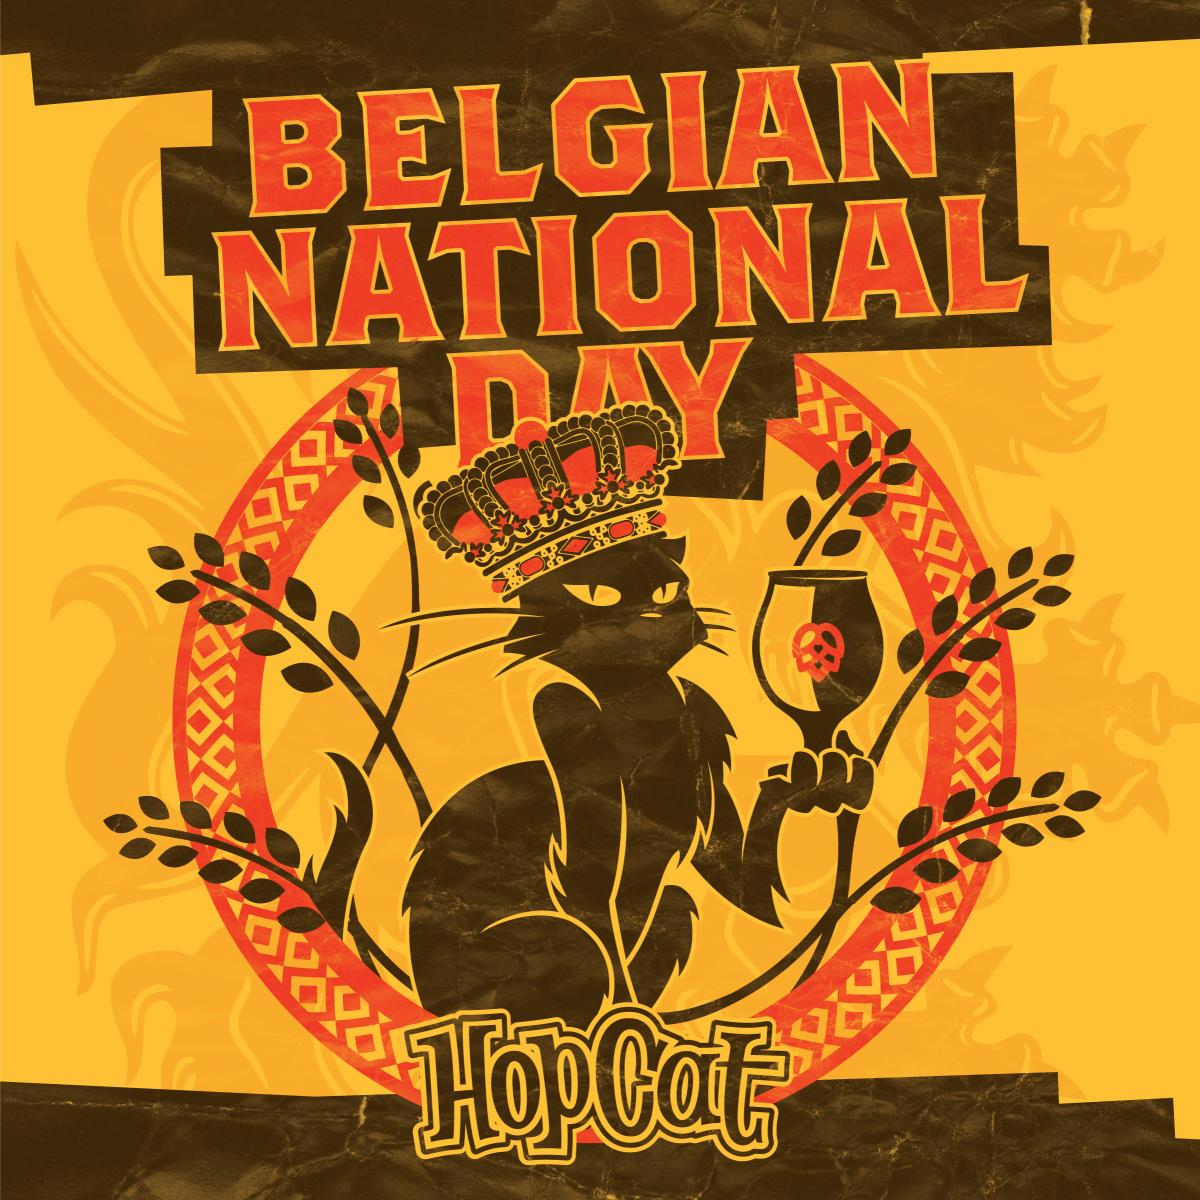 Belgian National Day is July 21